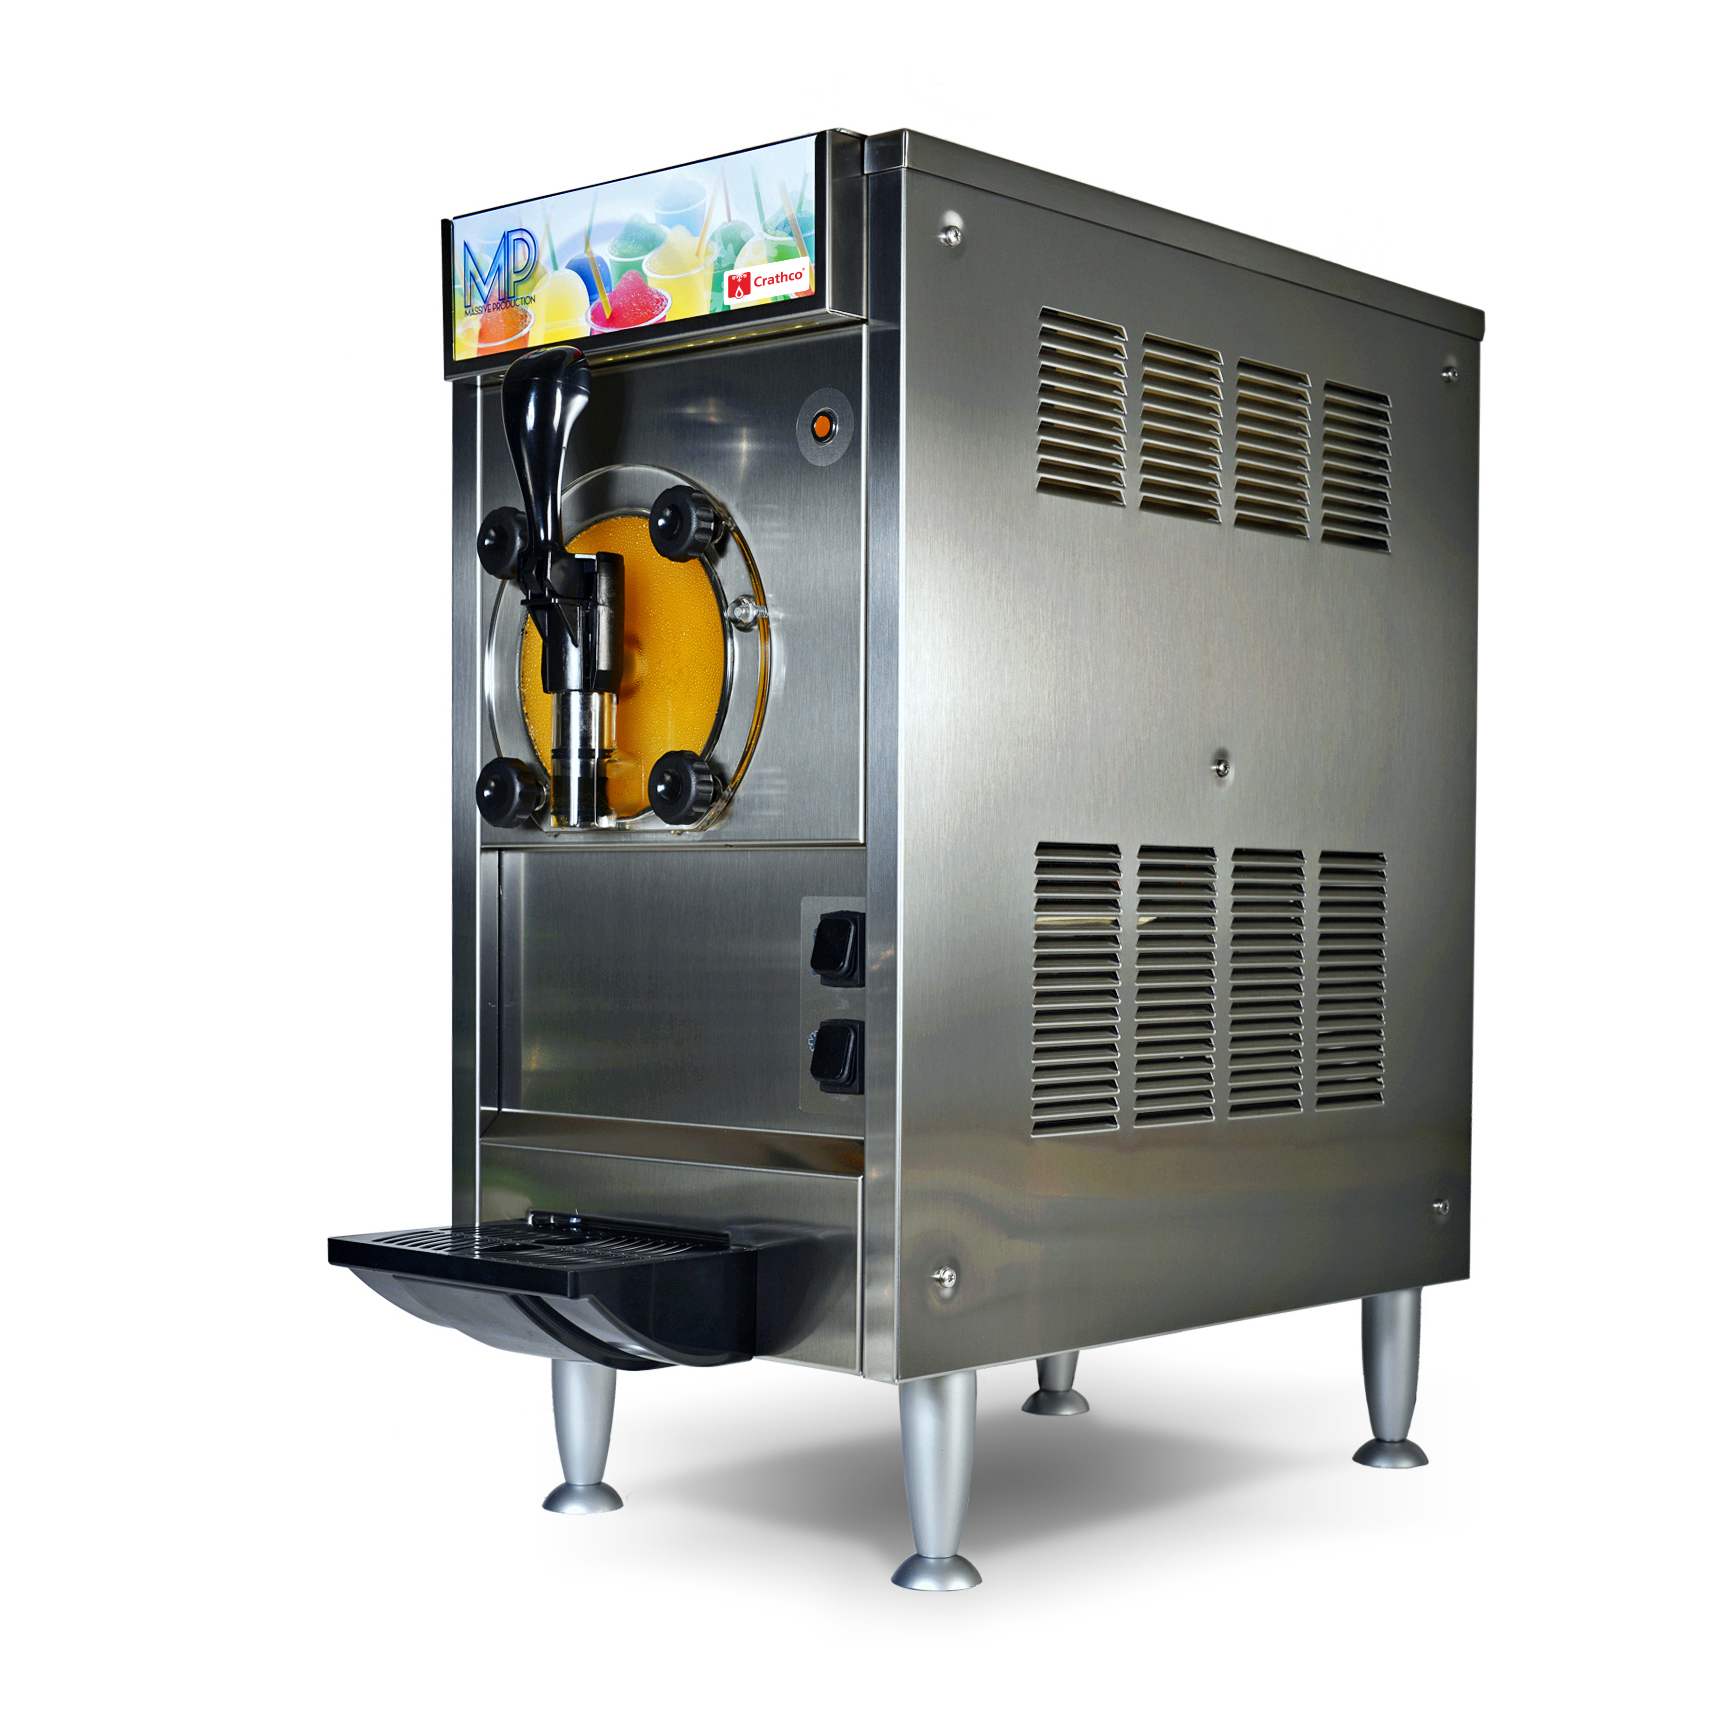 Grindmaster-Cecilware MP frozen drink machine, non-carbonated, cylinder type